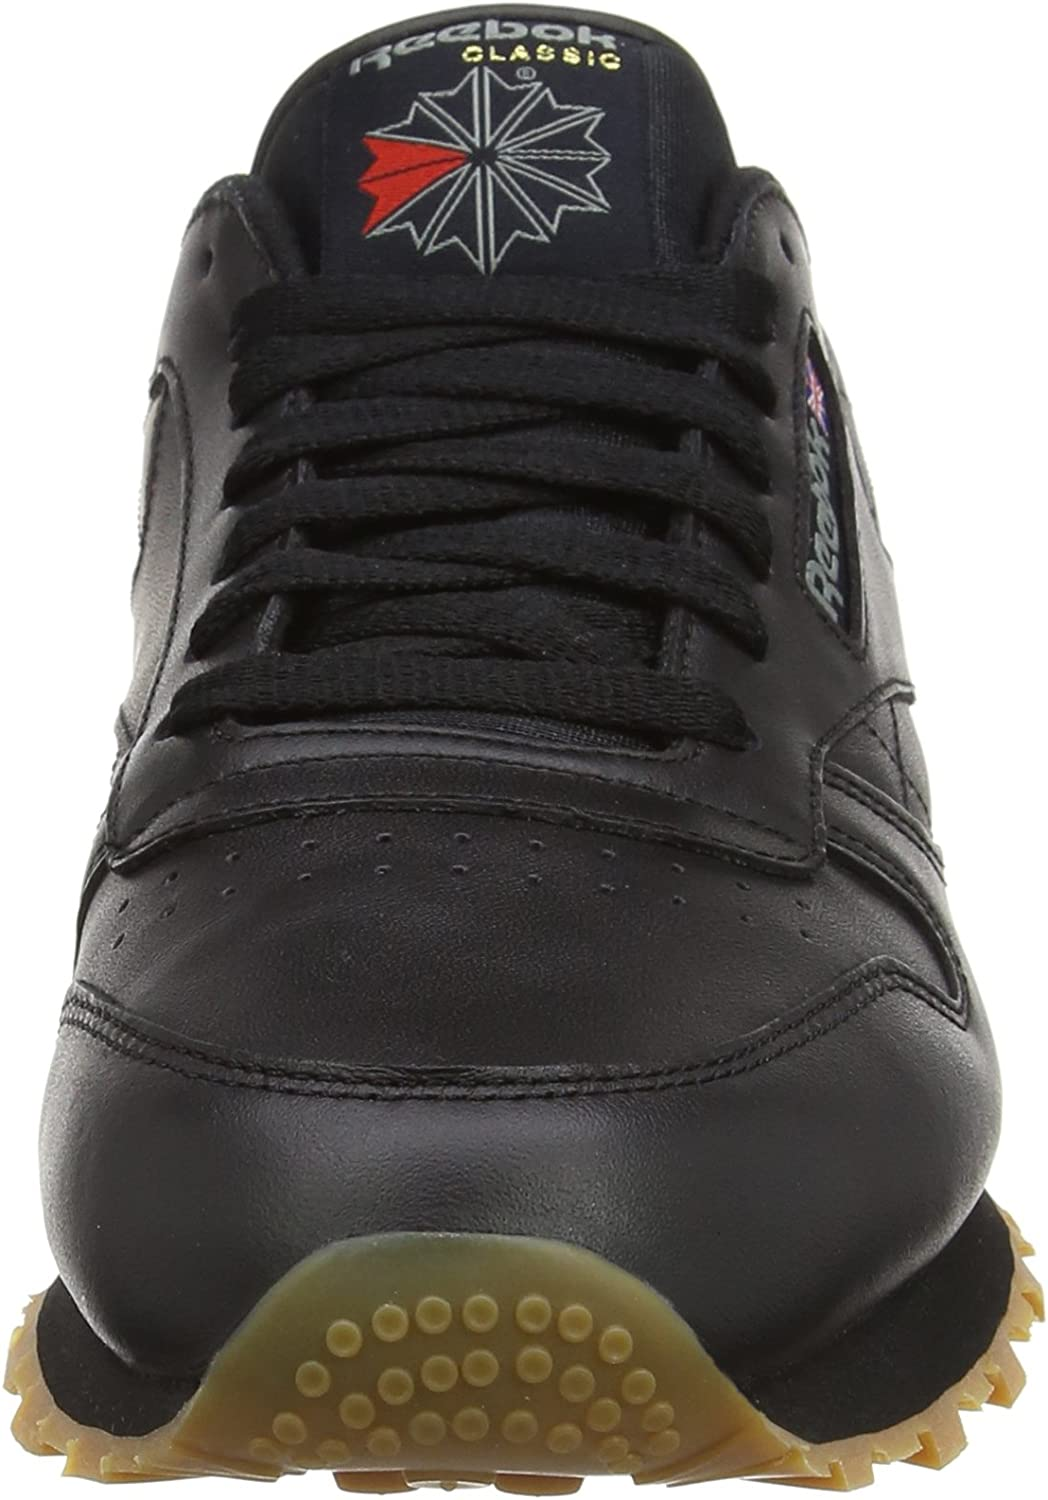 Reebok Herren Cl Lthr Low-Top Schwarz Black Gum